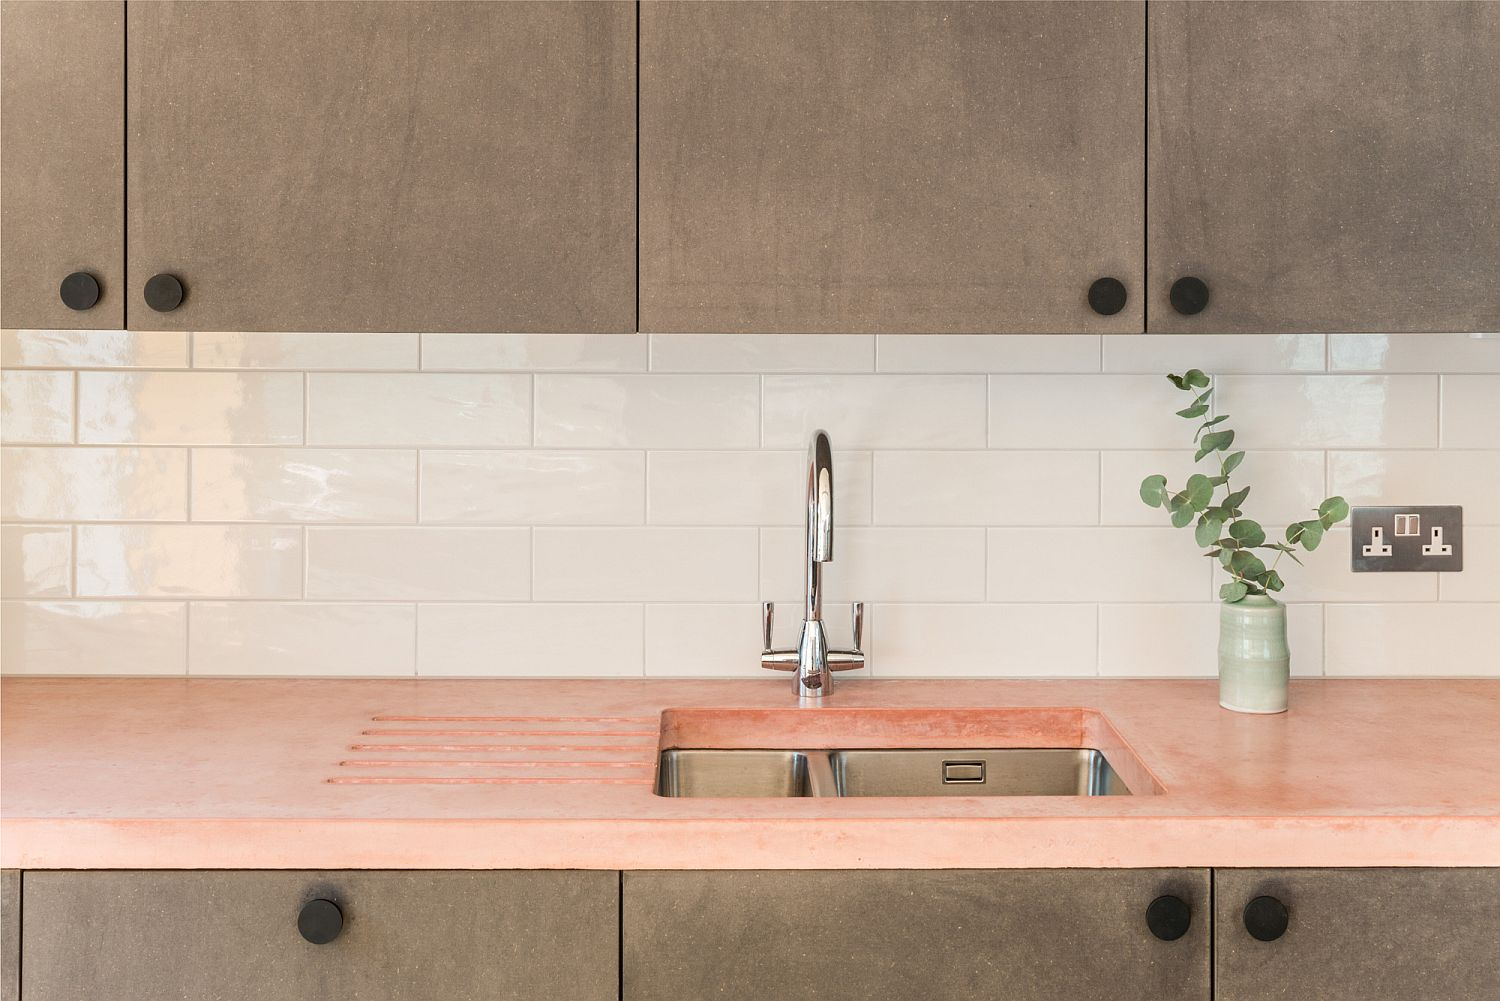 Light pink countertops with matte finish for the modern kitchen